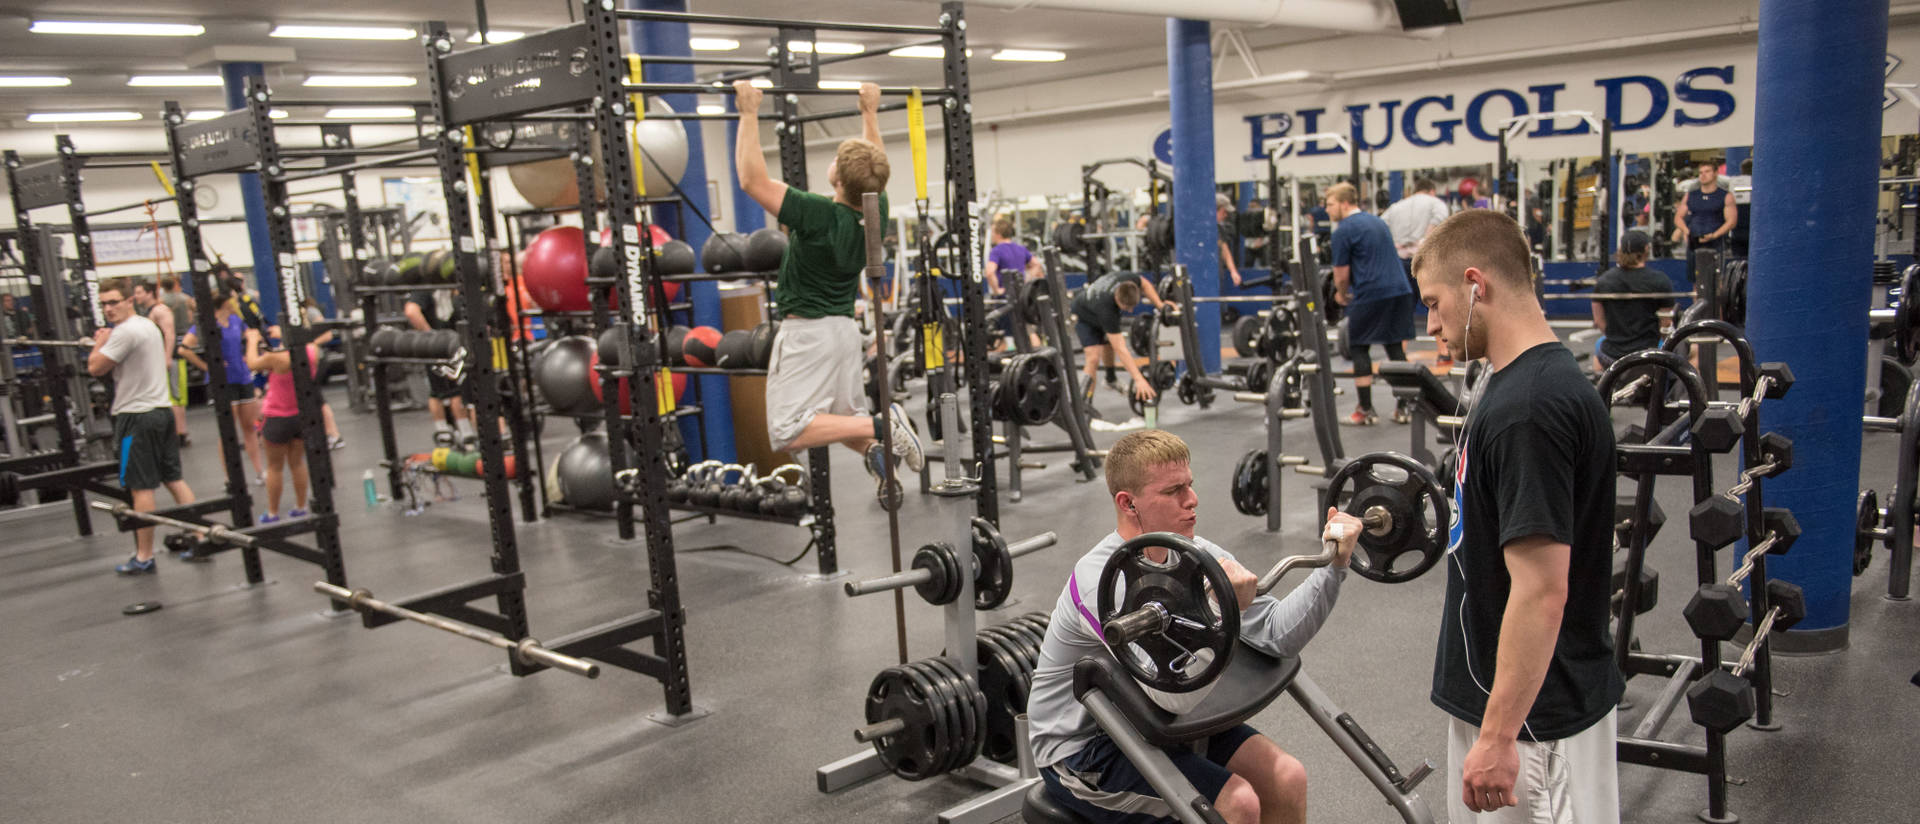 McPhee weight room